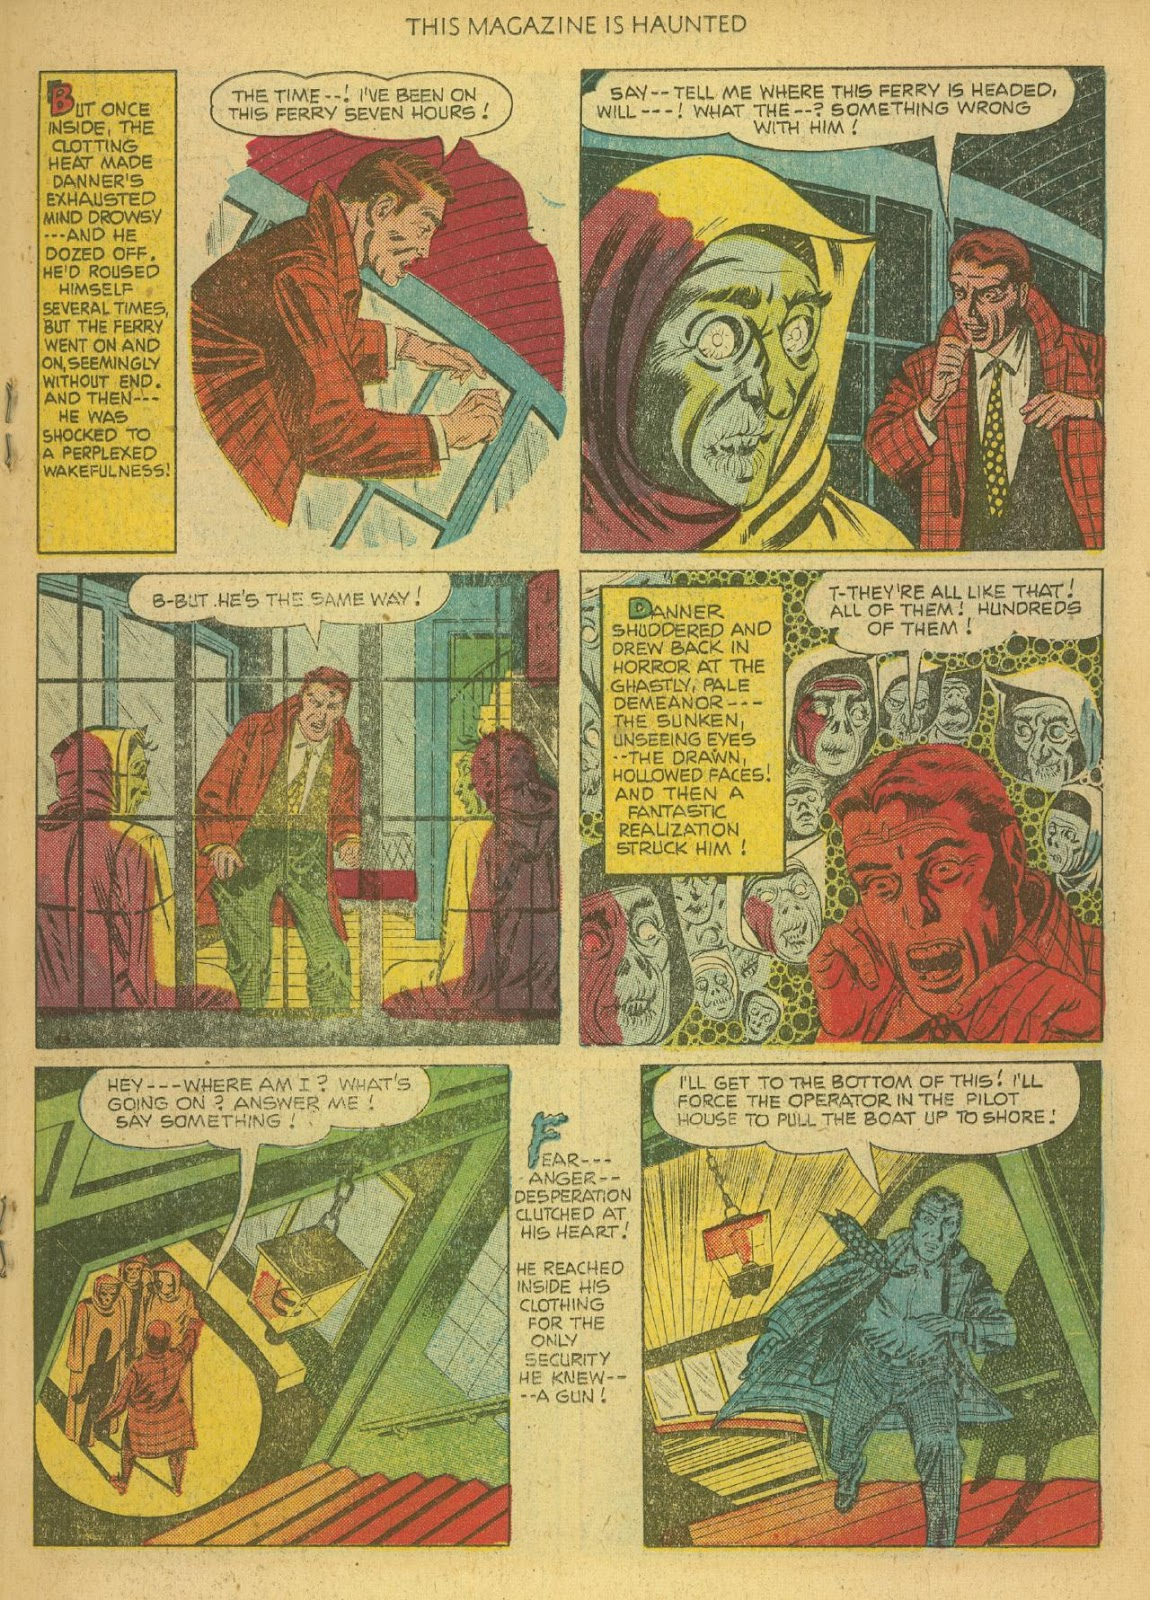 Read online This Magazine Is Haunted comic -  Issue #1 - 19